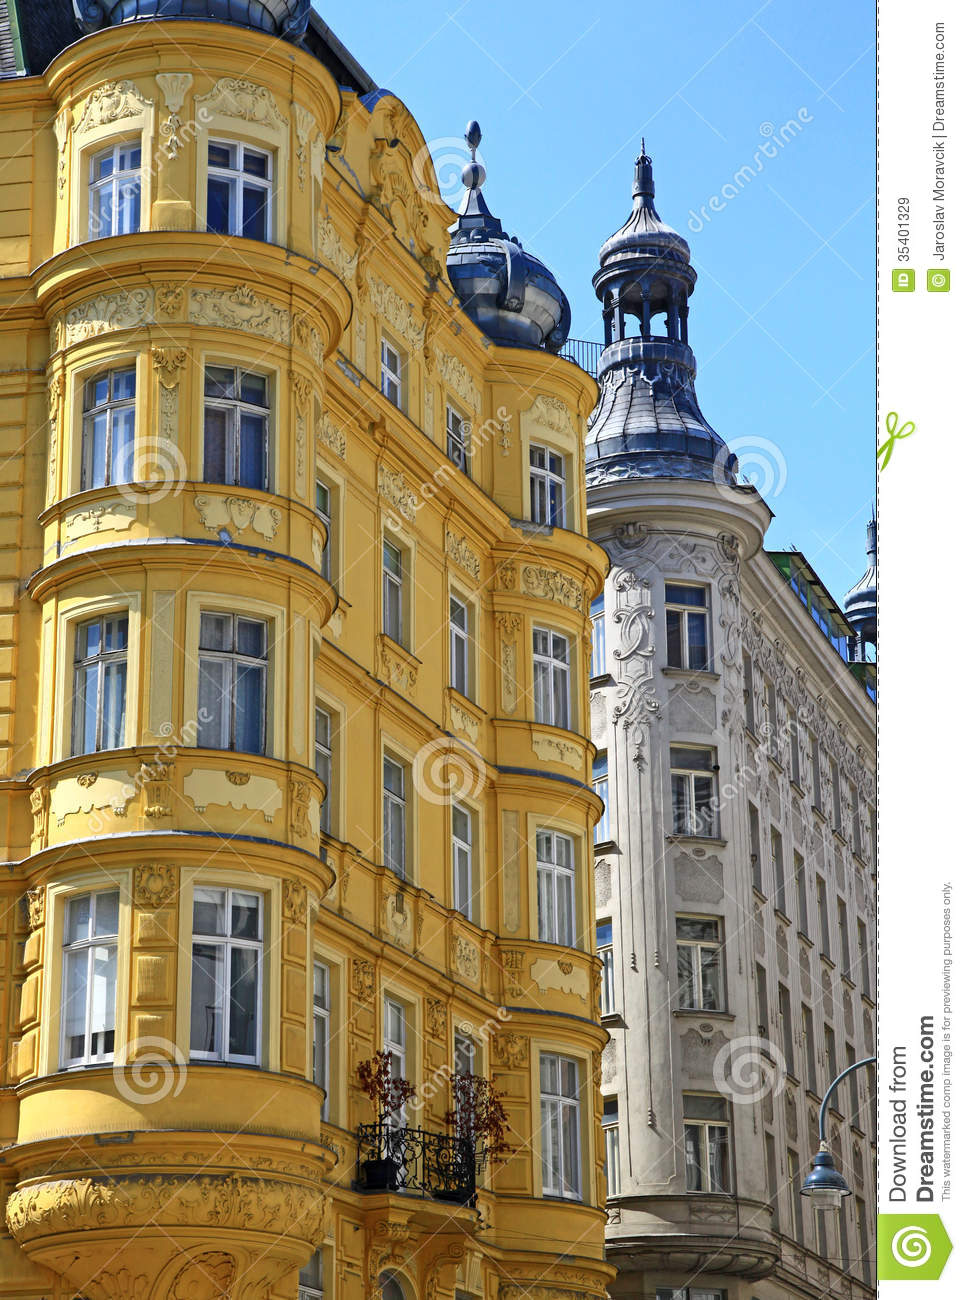 Vienna architecrure royalty free stock images image for Architecture vienne